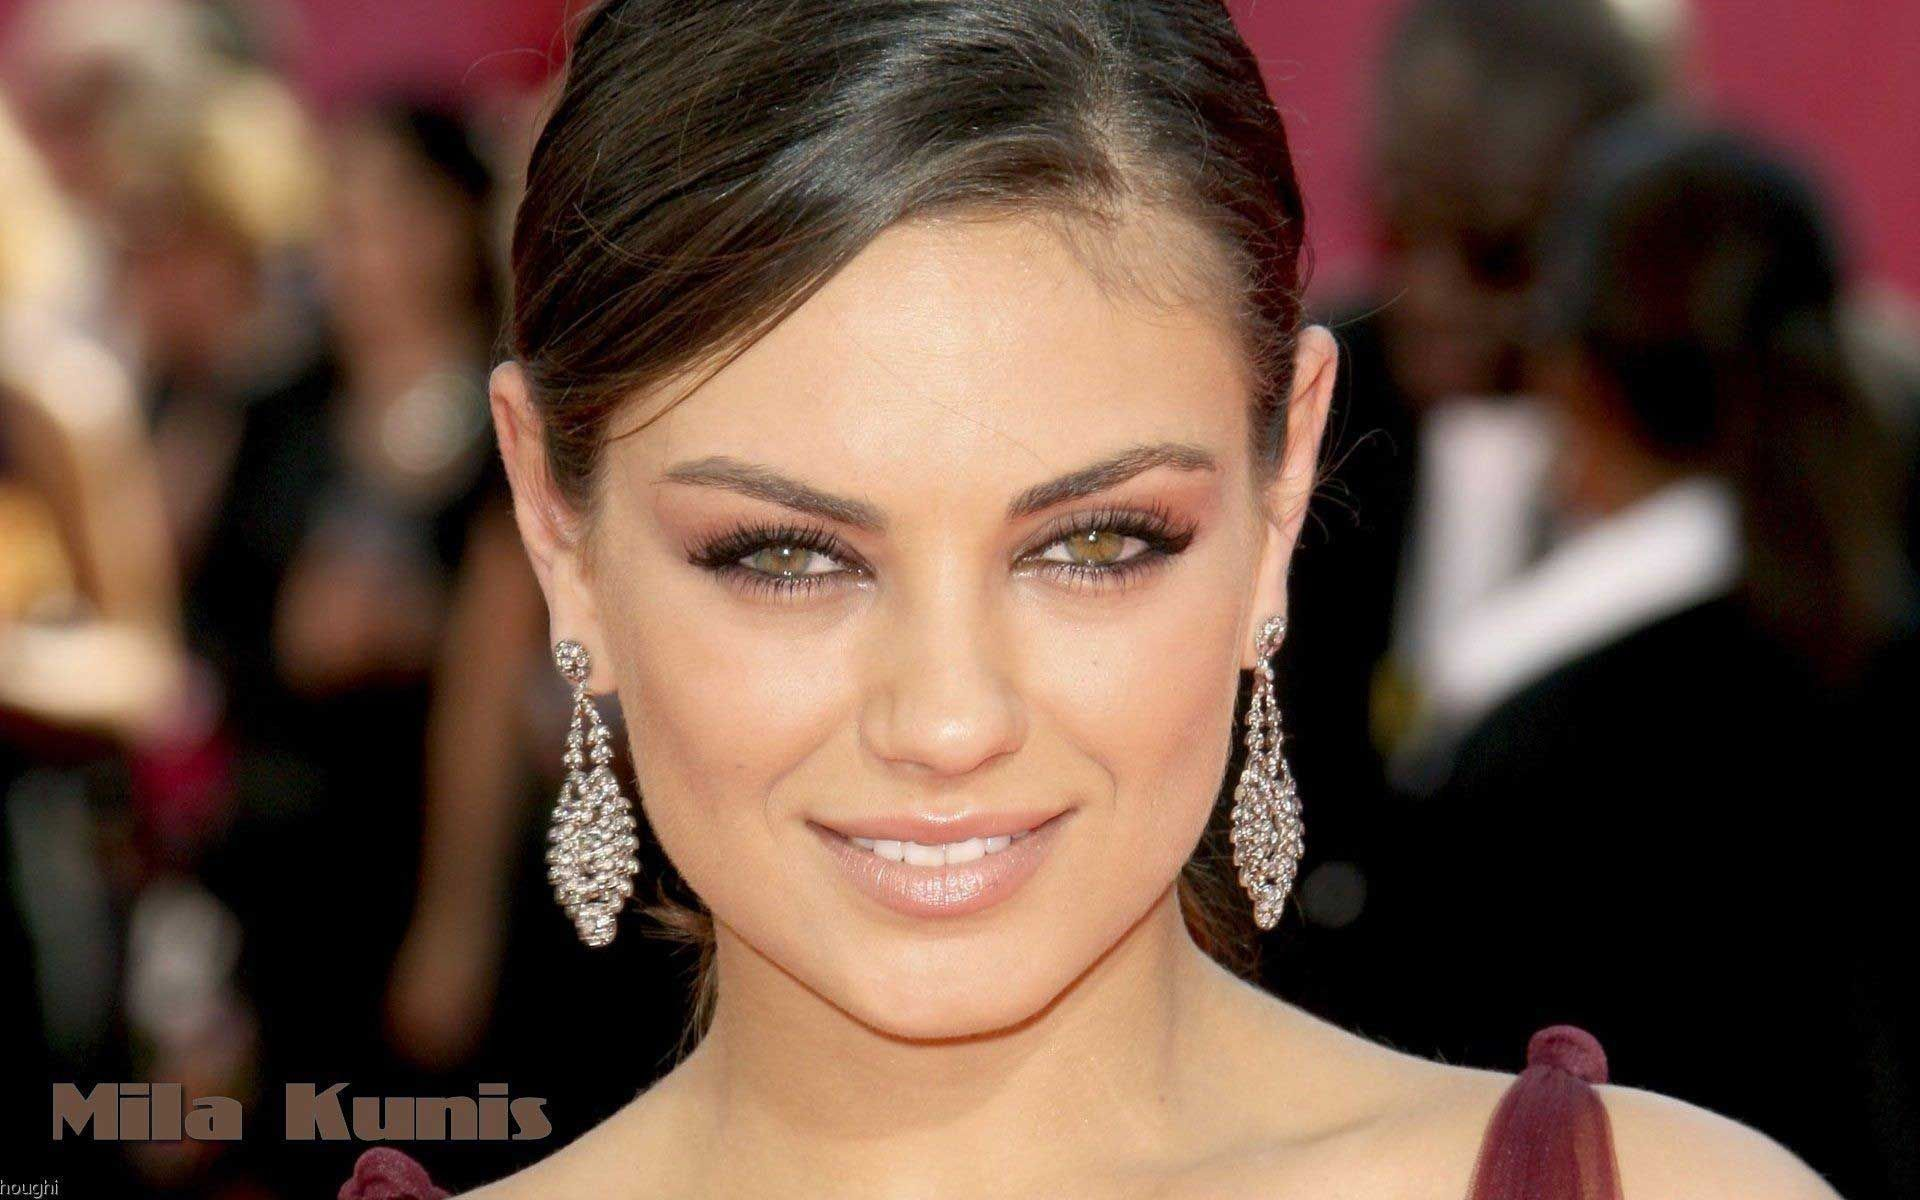 Mila Kunis HD Wallpaper #13   Apnatimepass.com Wallpaper